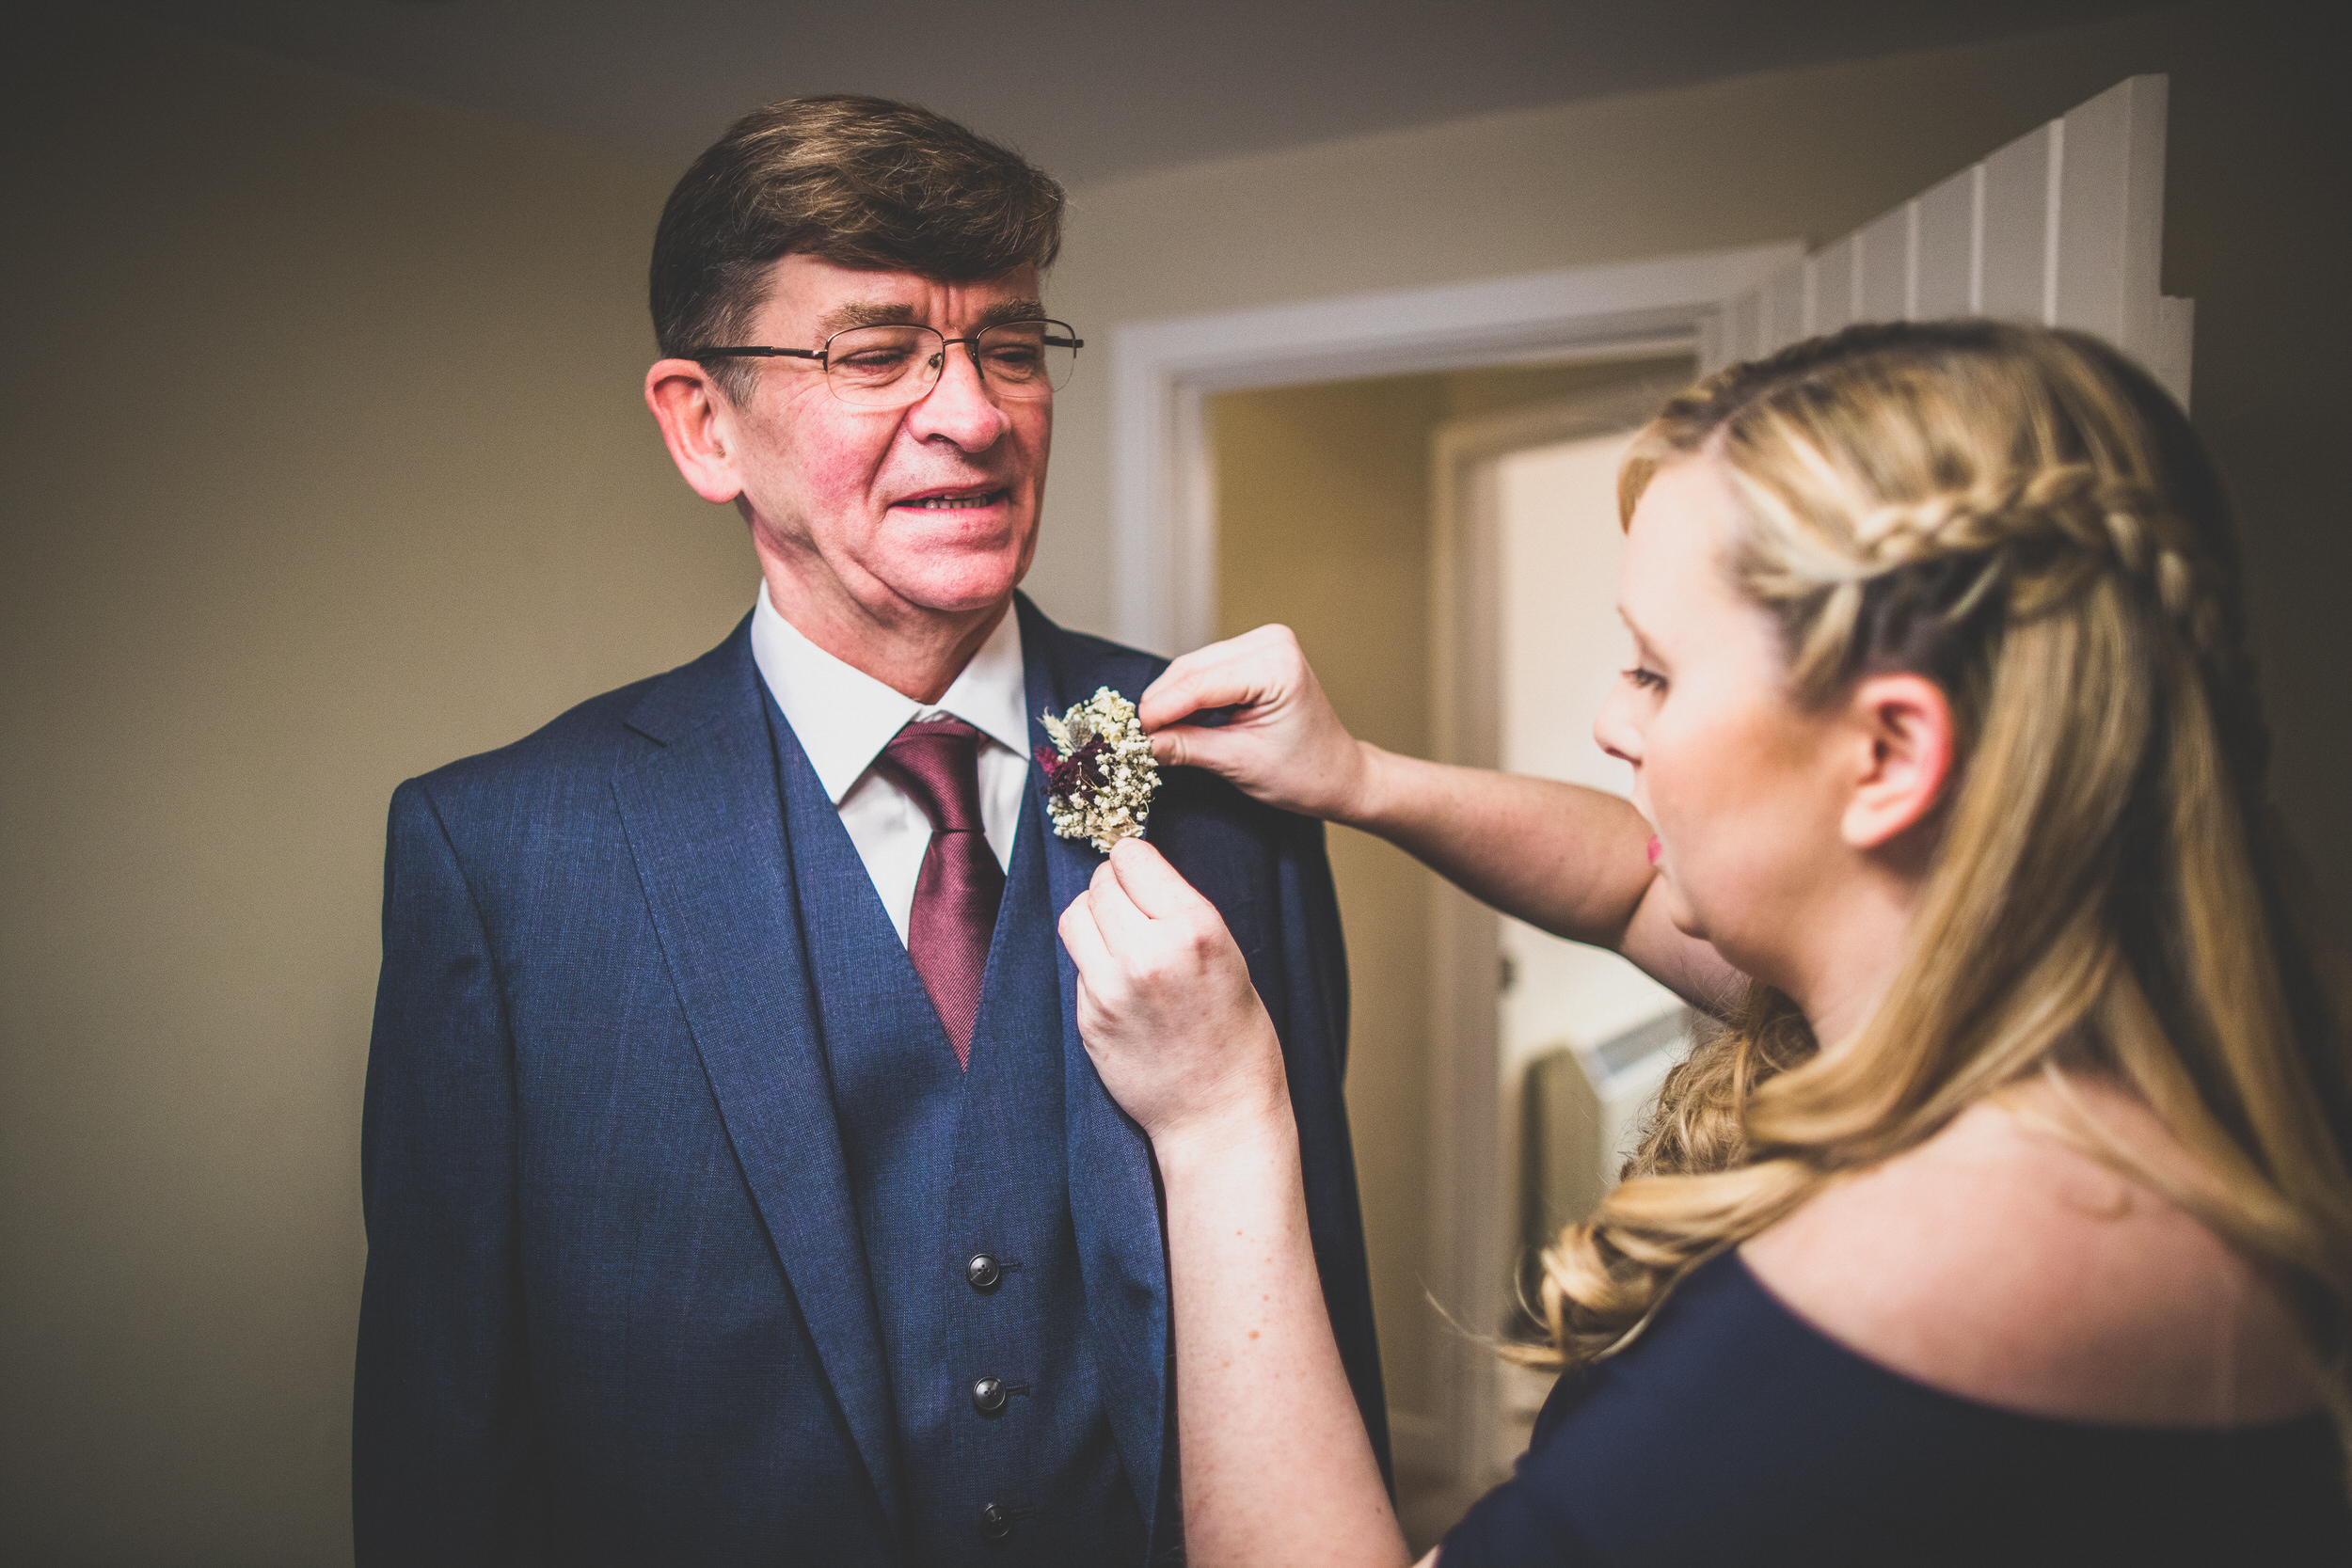 Putting the buttonhole on her father